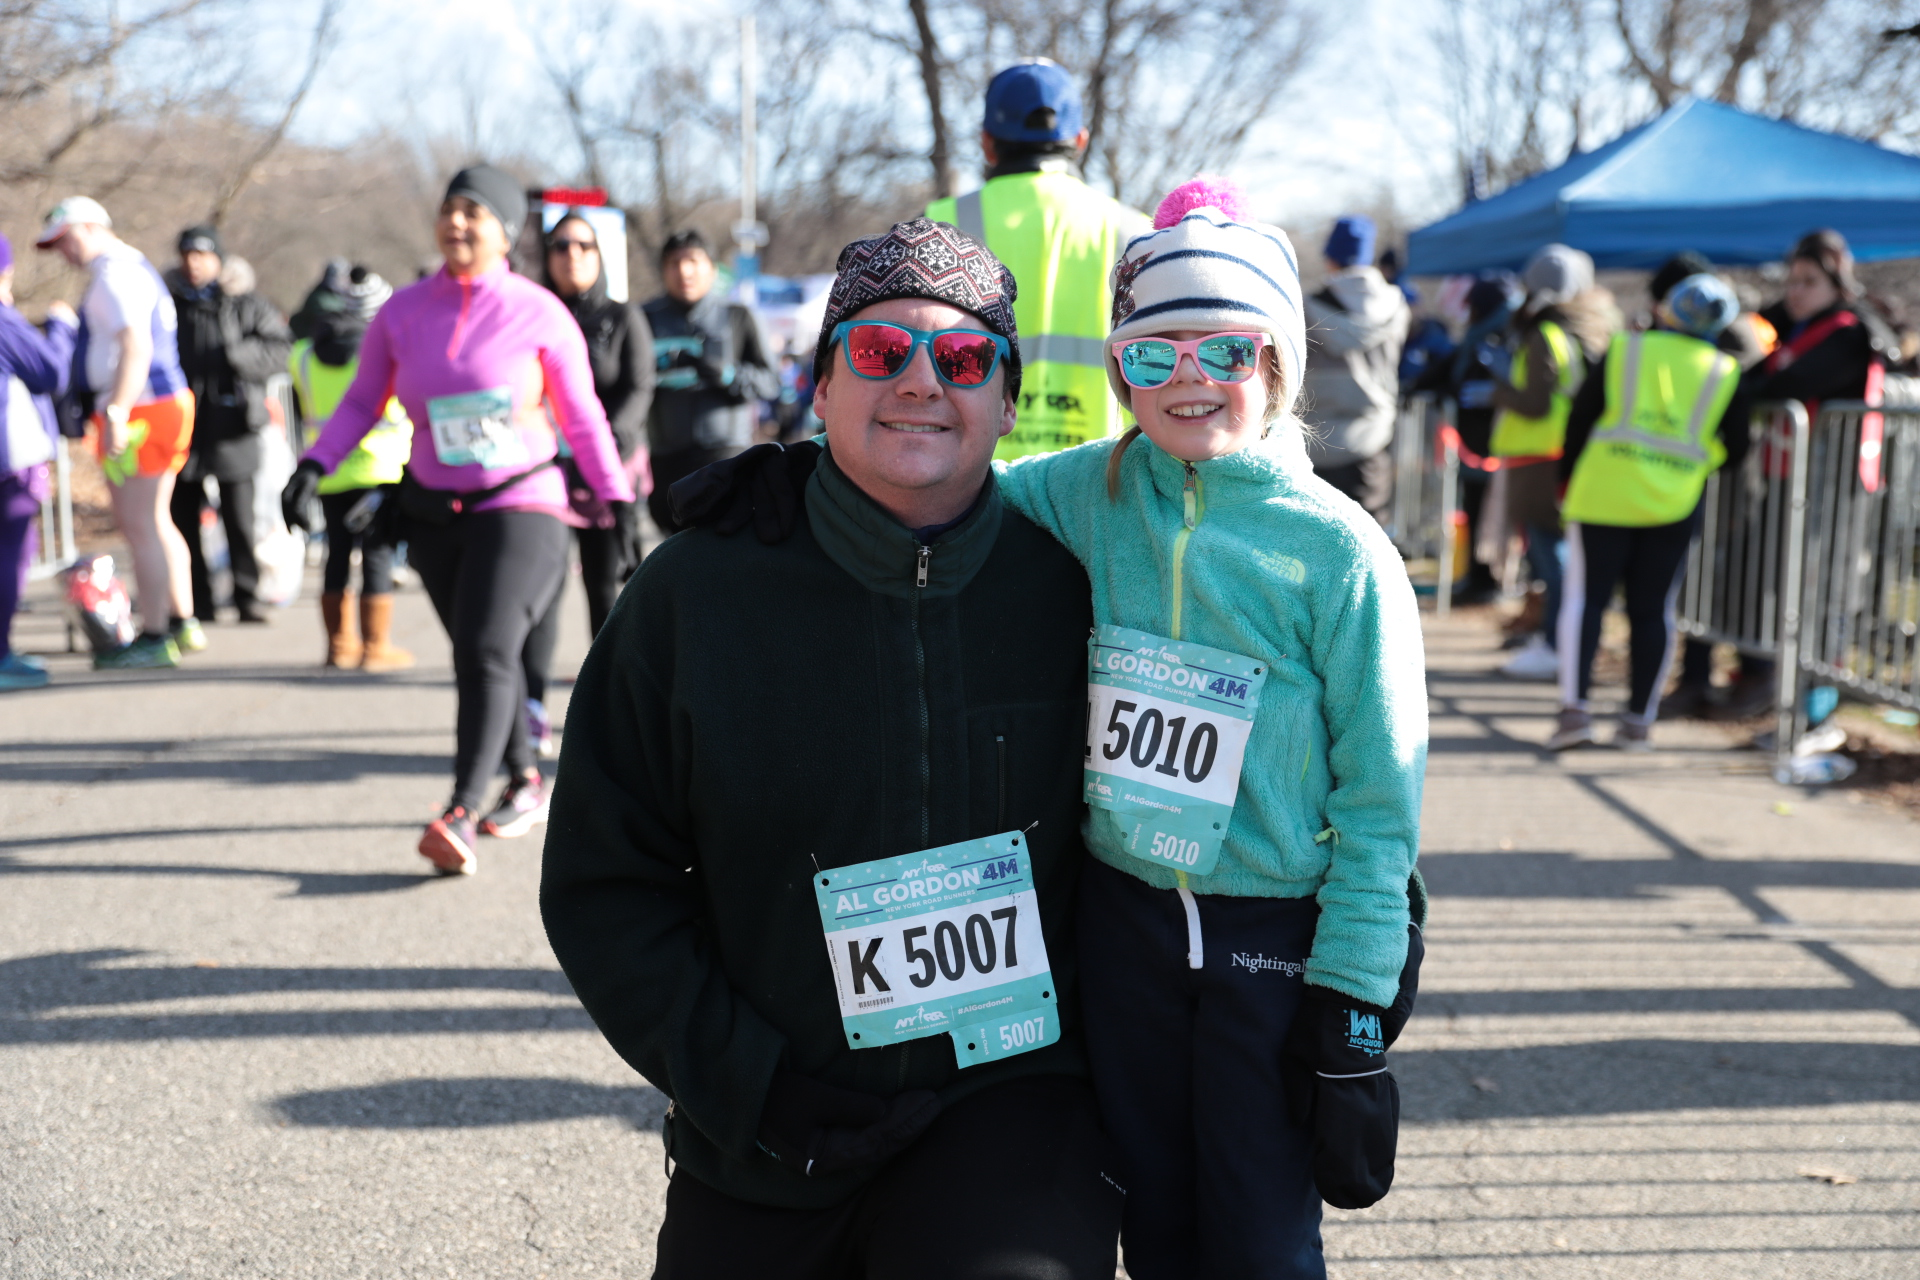 A man and his granddaughter finish the Al Gordon 4M together.